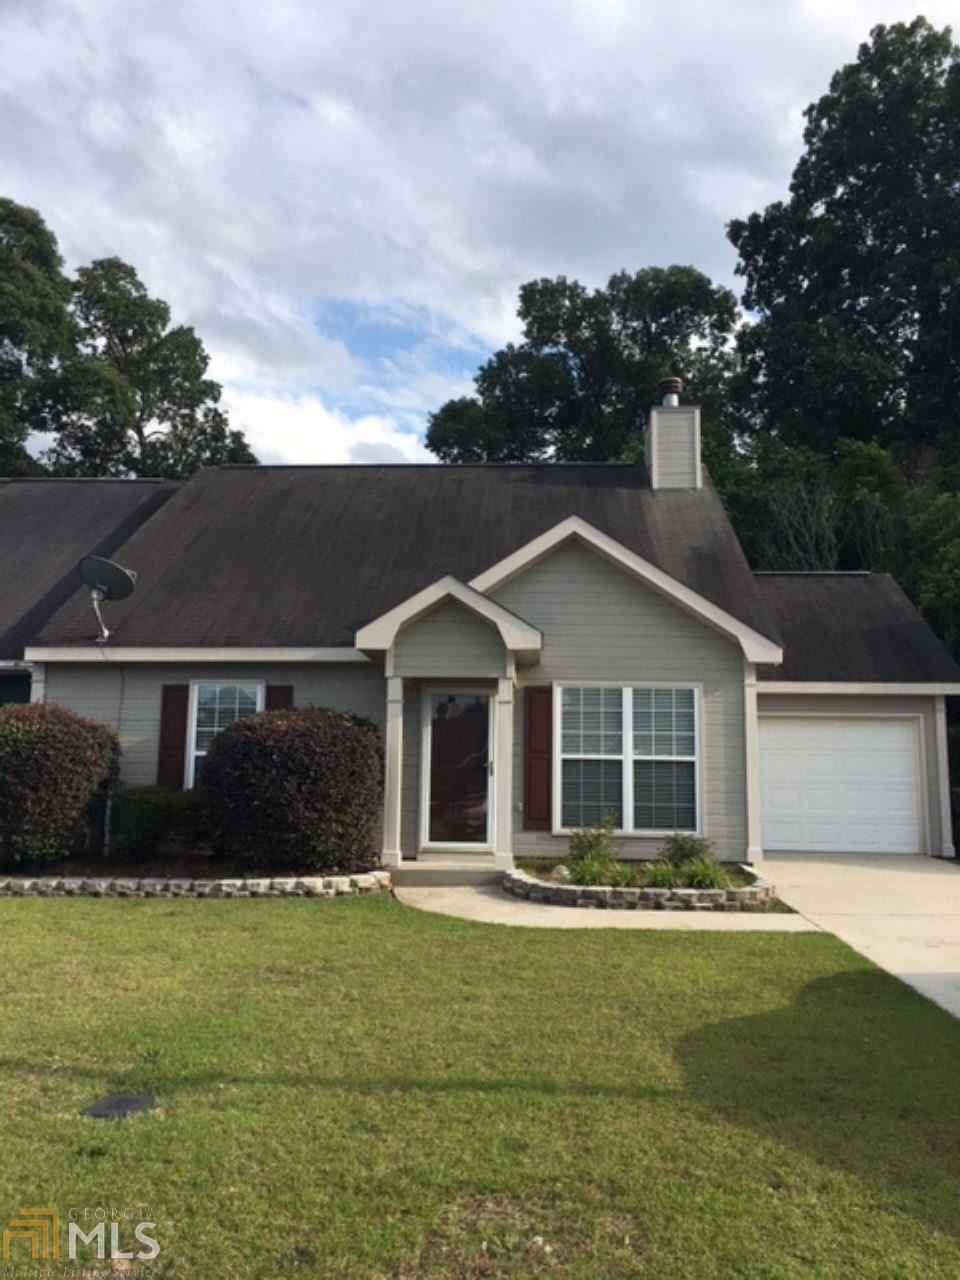 112 Pershing Place Ct, Warner Robins, GA 31088 - #: 8791828